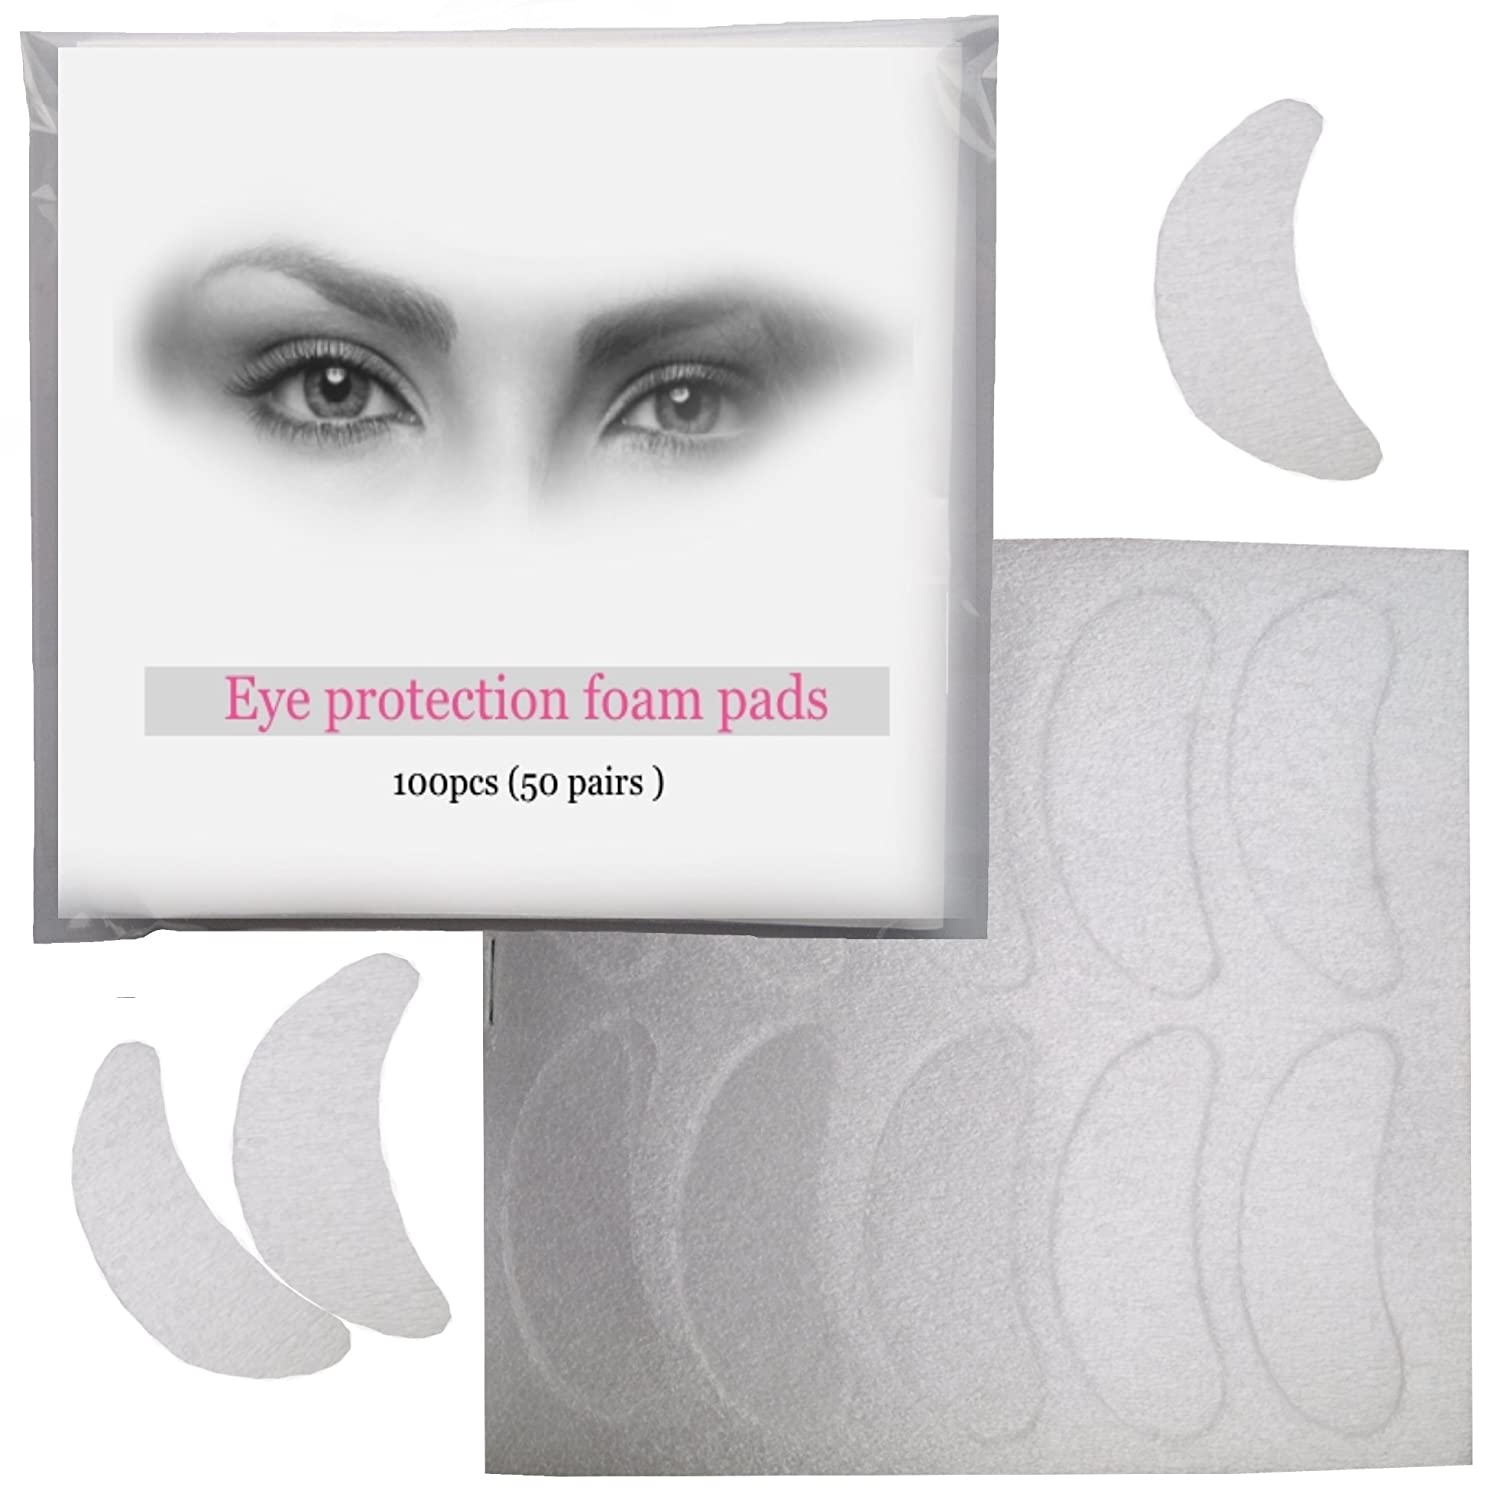 Professional Eye Protection Foam Pads For Eyelash Tinting With